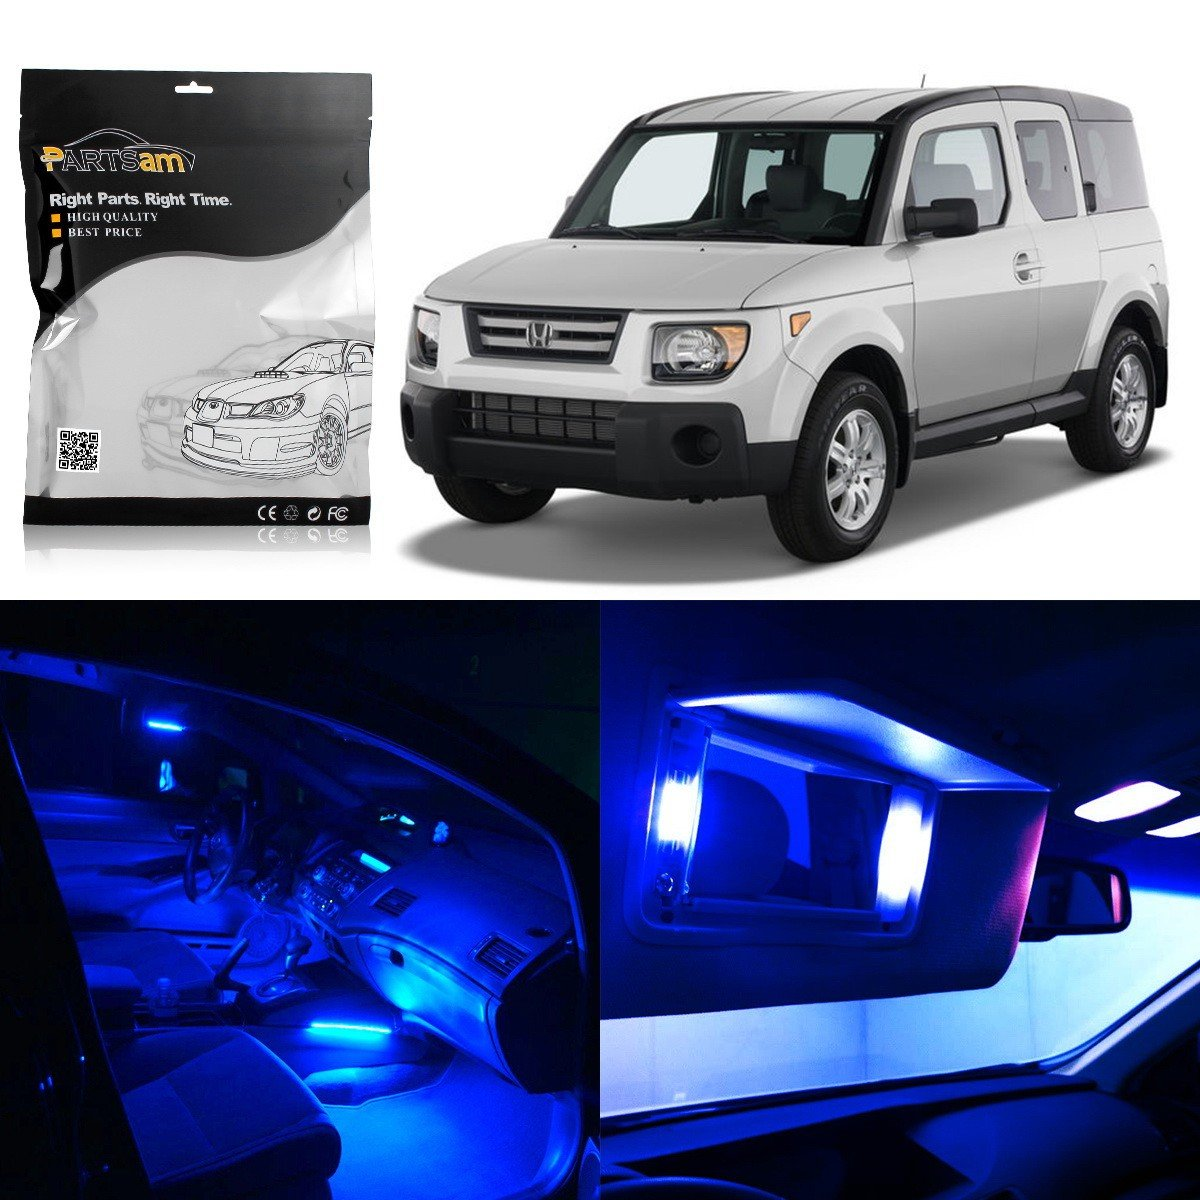 Amazon.com: Partsam 2003-2008 Honda Element Blue Interior LED Light Package  Kit (6 Pieces): Automotive